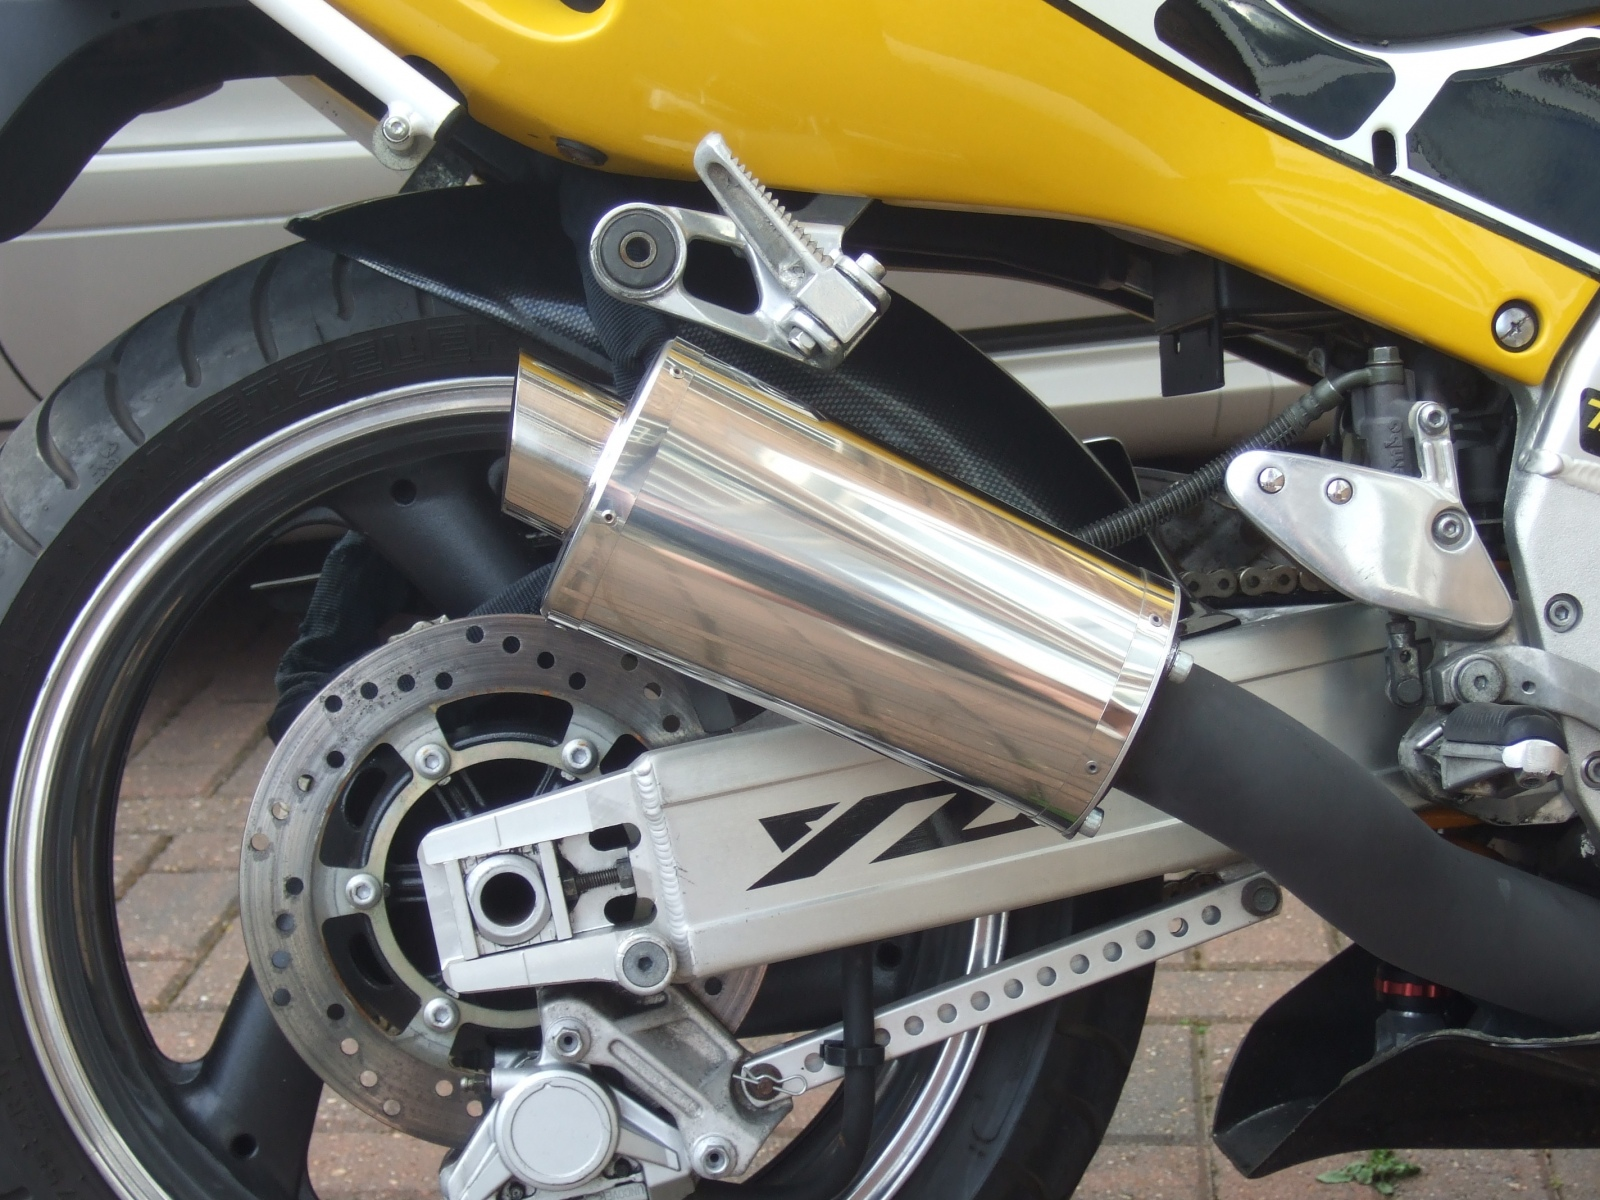 """Yamaha YZF 1000 Thunderace 1996-2003<p>A16 Stainless Stubby Exhaust with Slashcut Outlet</p><p/><br/><a href=""""https://a16roadnracesupplies.co.uk/product/a16-yamaha-exhausts/"""">Buy now!</a>"""